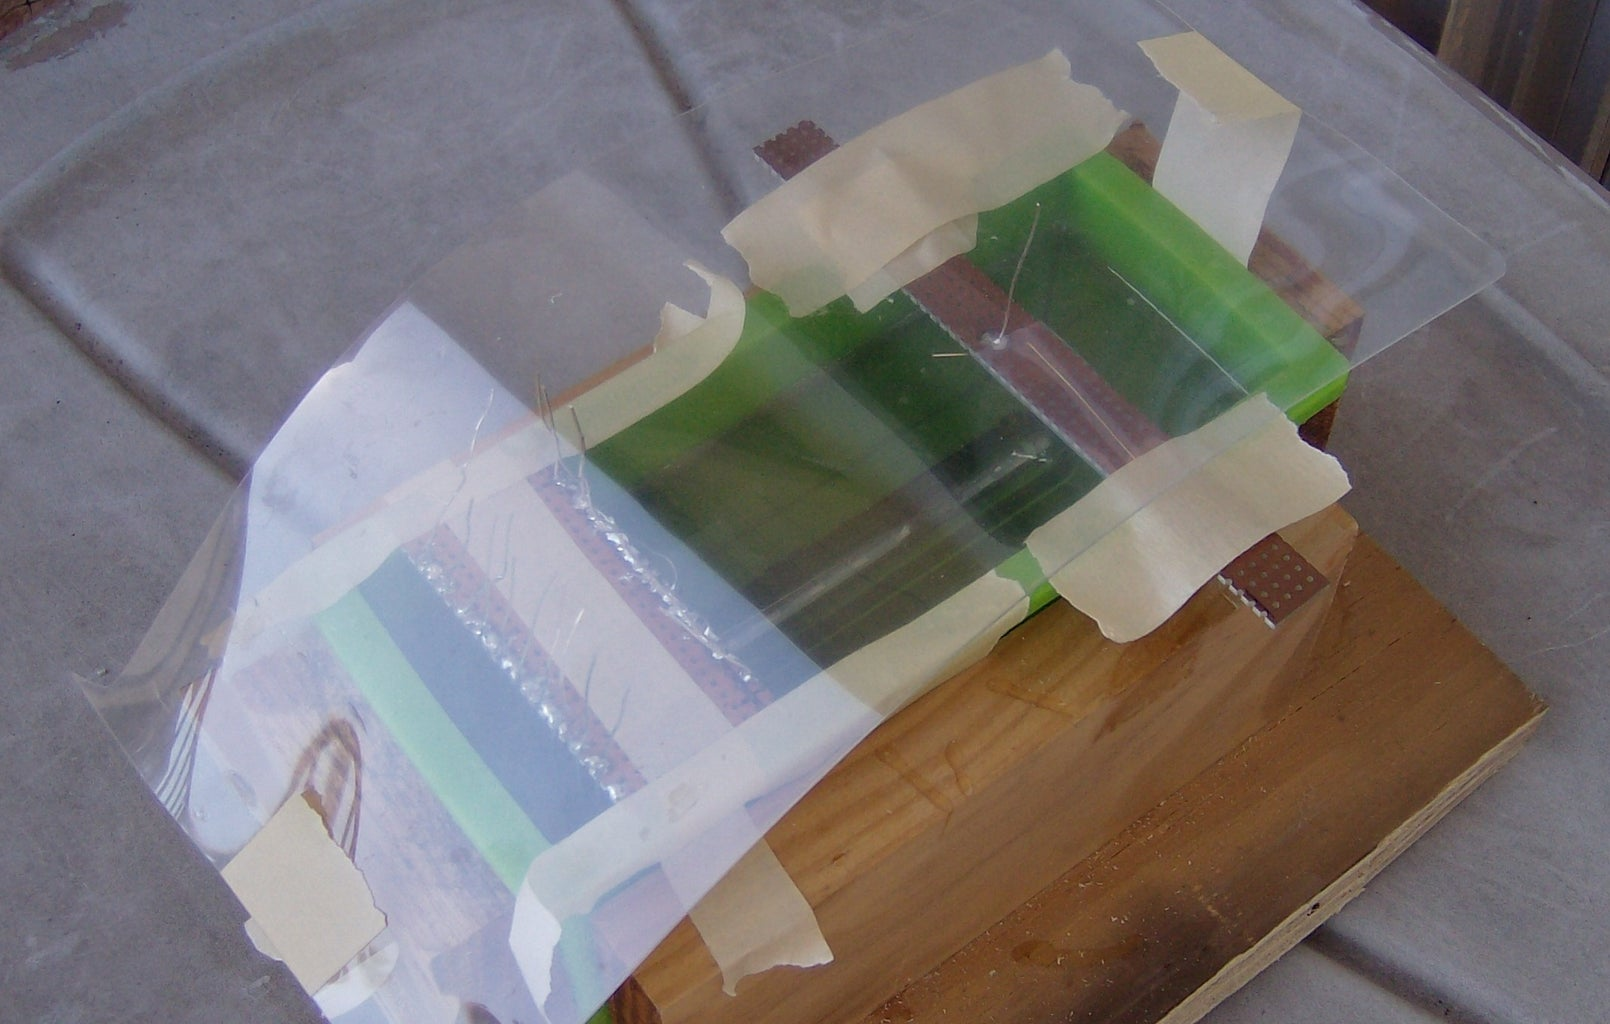 Immediately After Pouring the Resin: Attach Standoff Jig